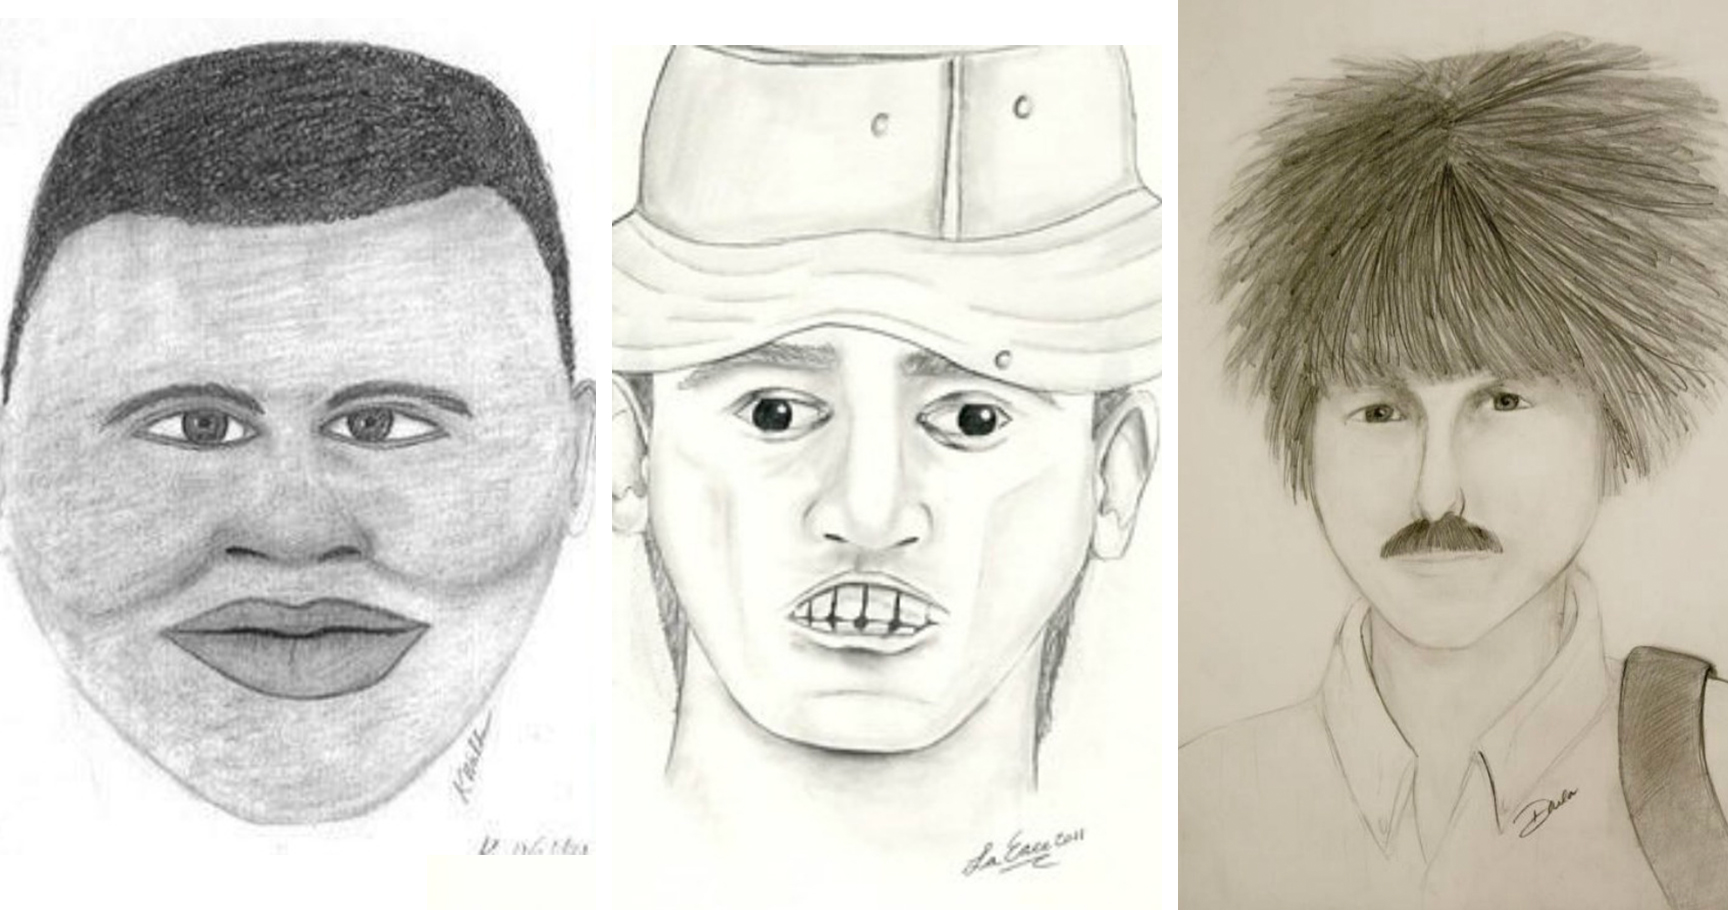 15 Of The Worst Police Sketches In Existence